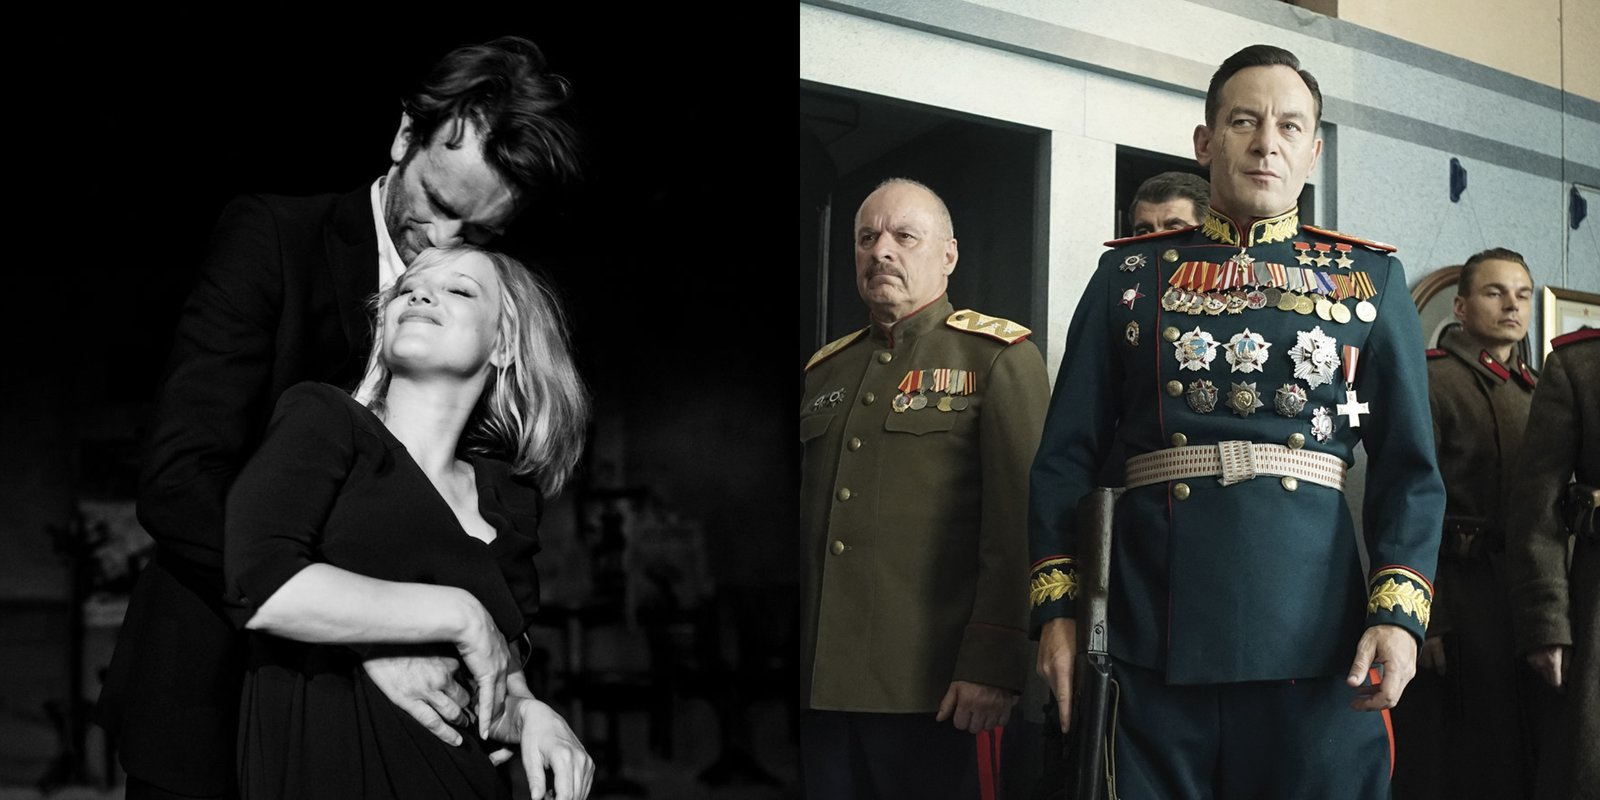 Cold War, The Death of Stalin, Aukstais karš, Staļina nāve